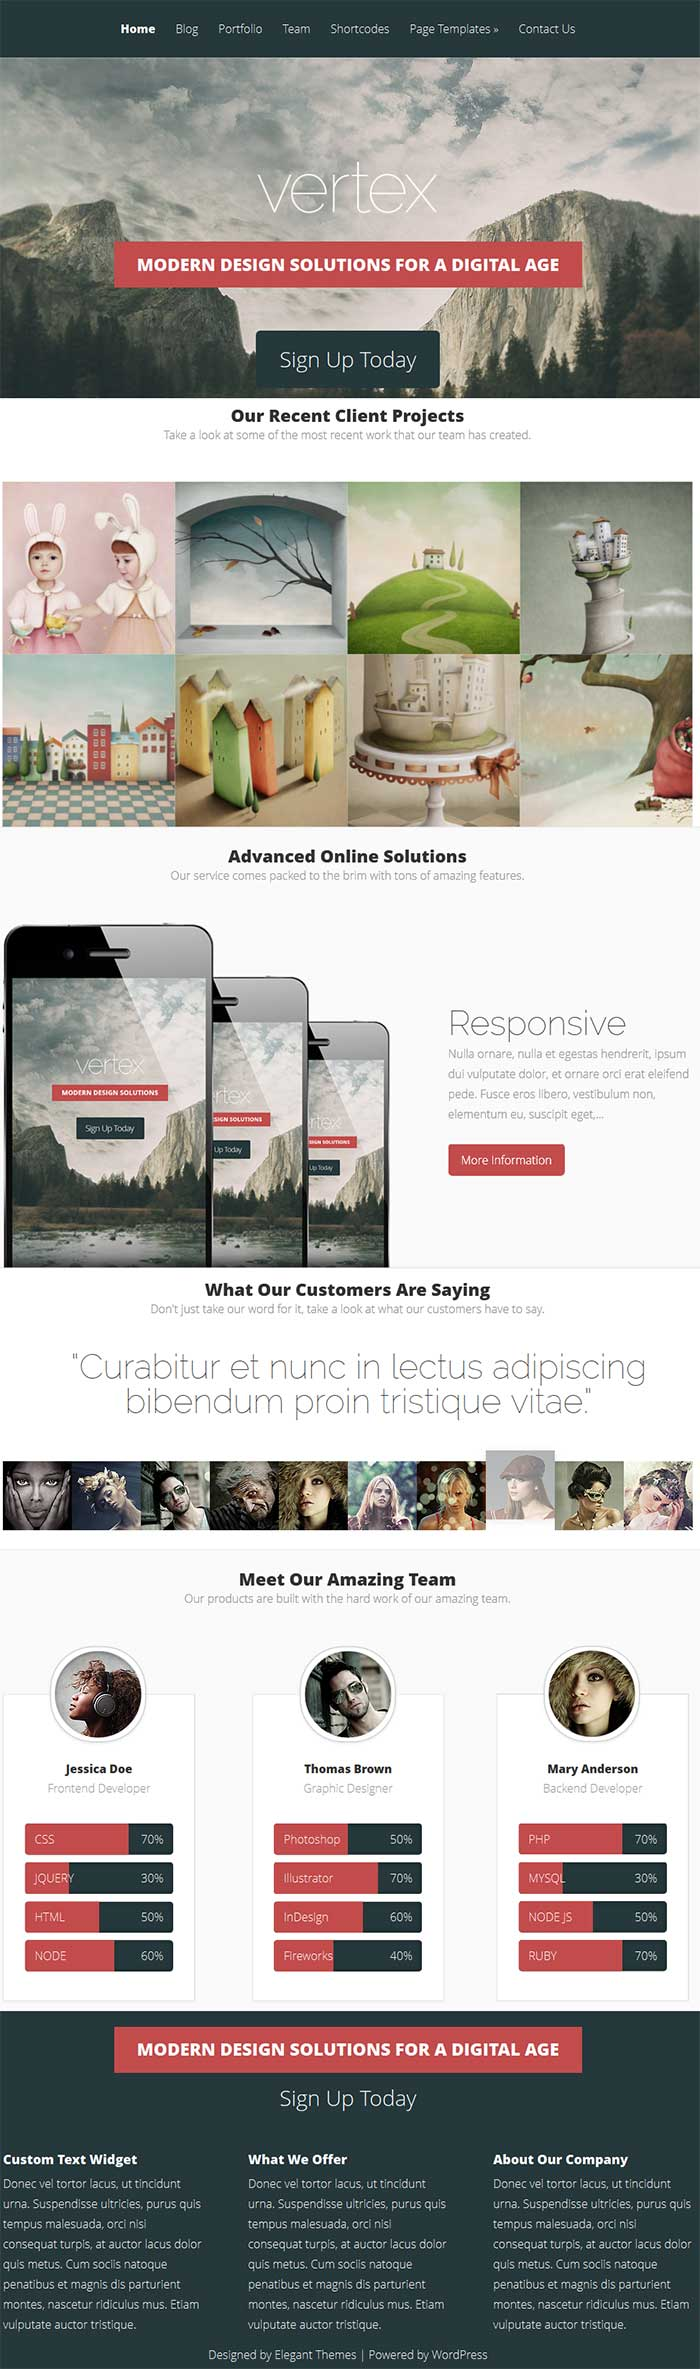 Designed by elegant themes powered by wordpress - Vertex Wordpress Theme Review Elegant Themes Review Demo